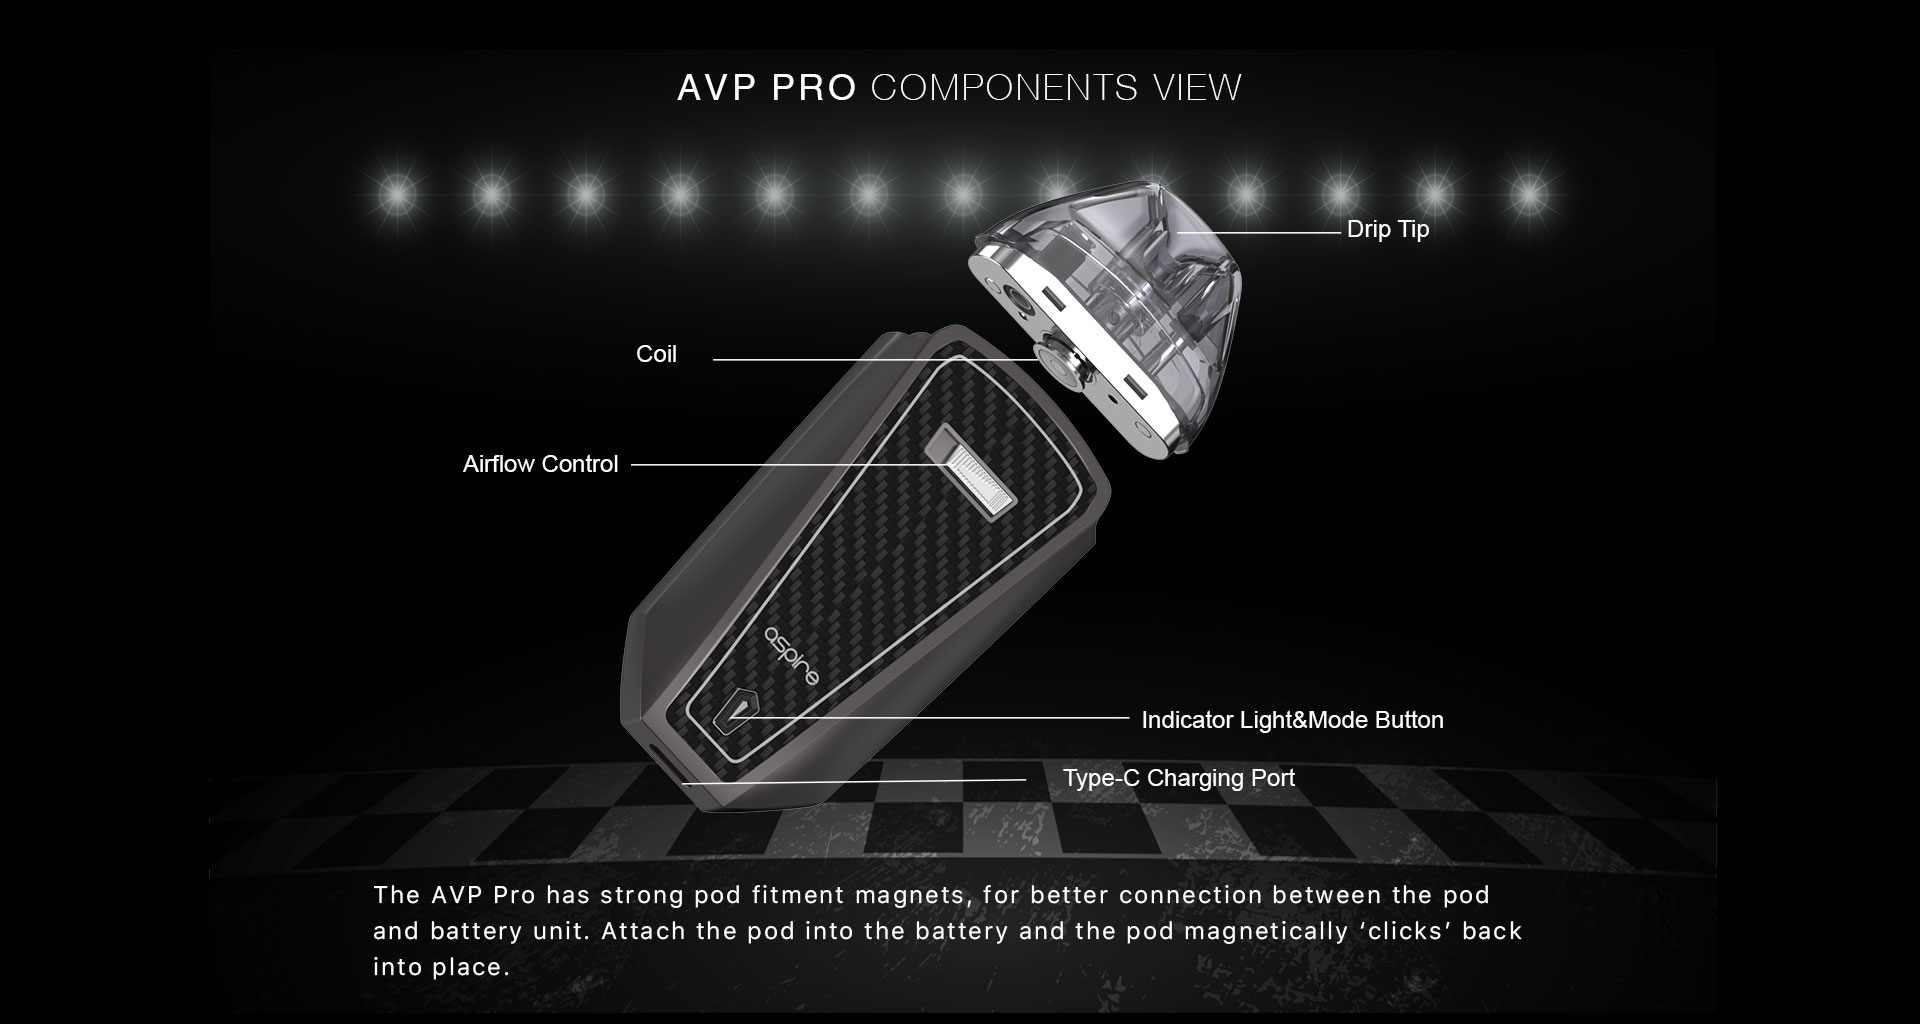 AVP Pro Kit Components